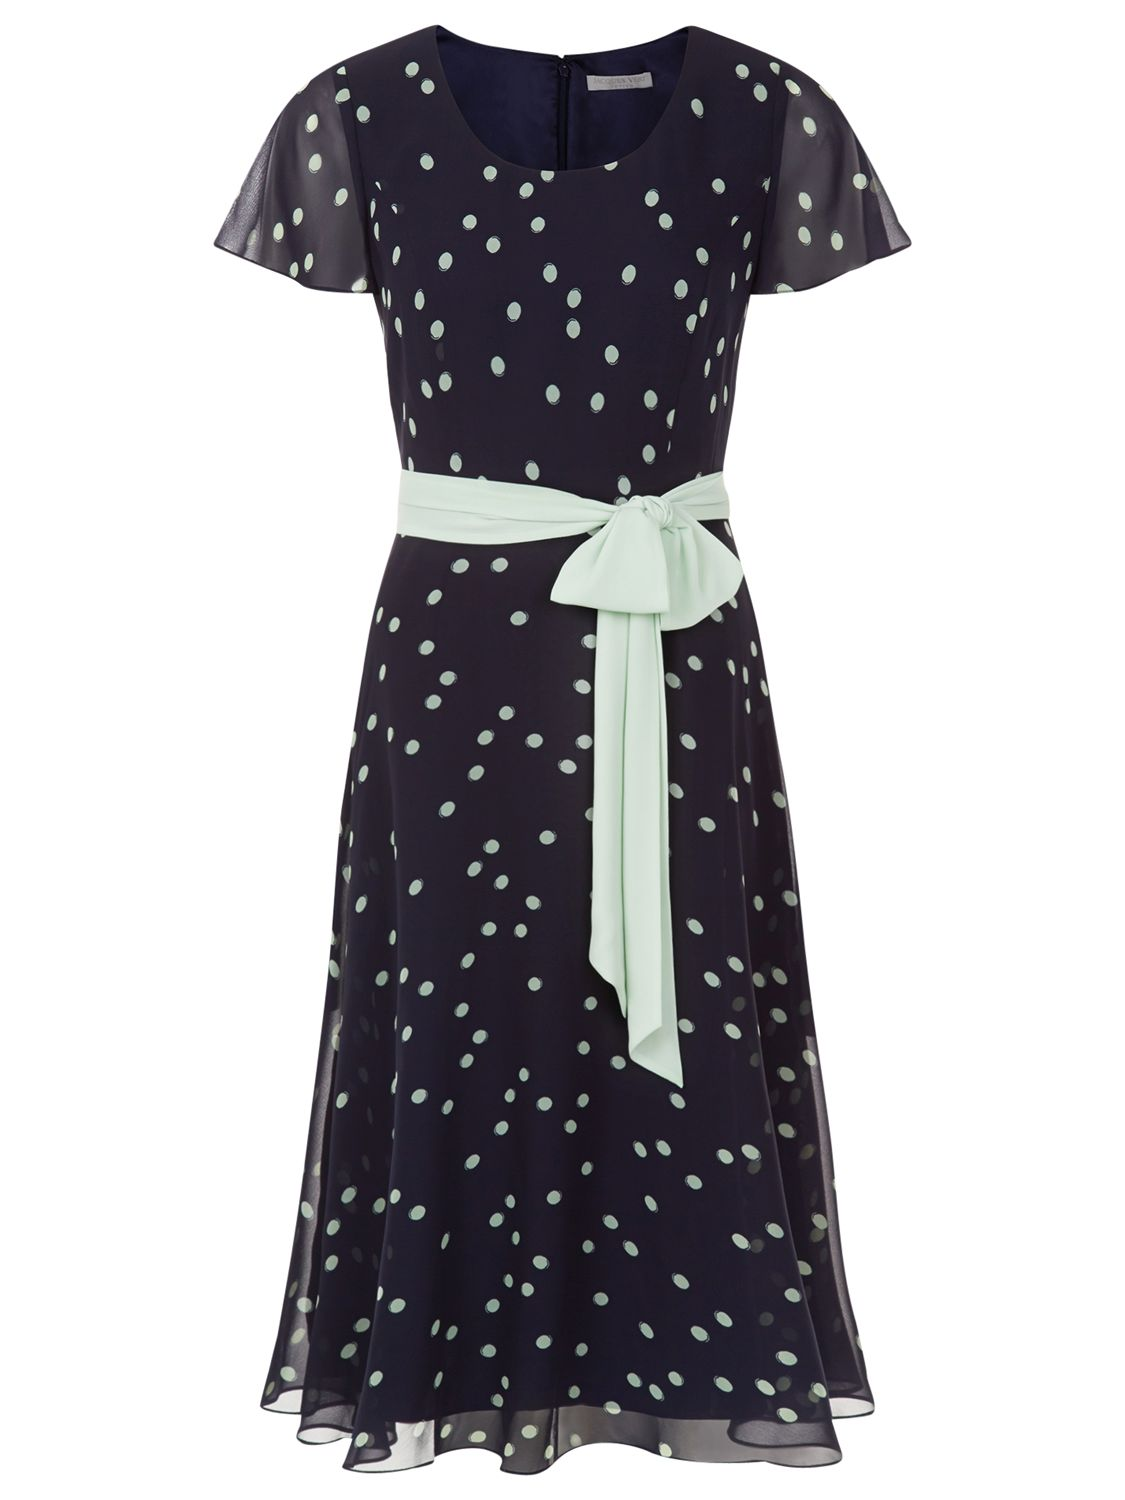 jacques vert petite fit and flare dress multi navy, jacques, vert, petite, fit, flare, dress, multi, navy, jacques vert, 10|22|14|18|12|20|16|24|8, women, womens dresses, gifts, wedding, wedding clothing, mother of the bride, female guests, 1845352